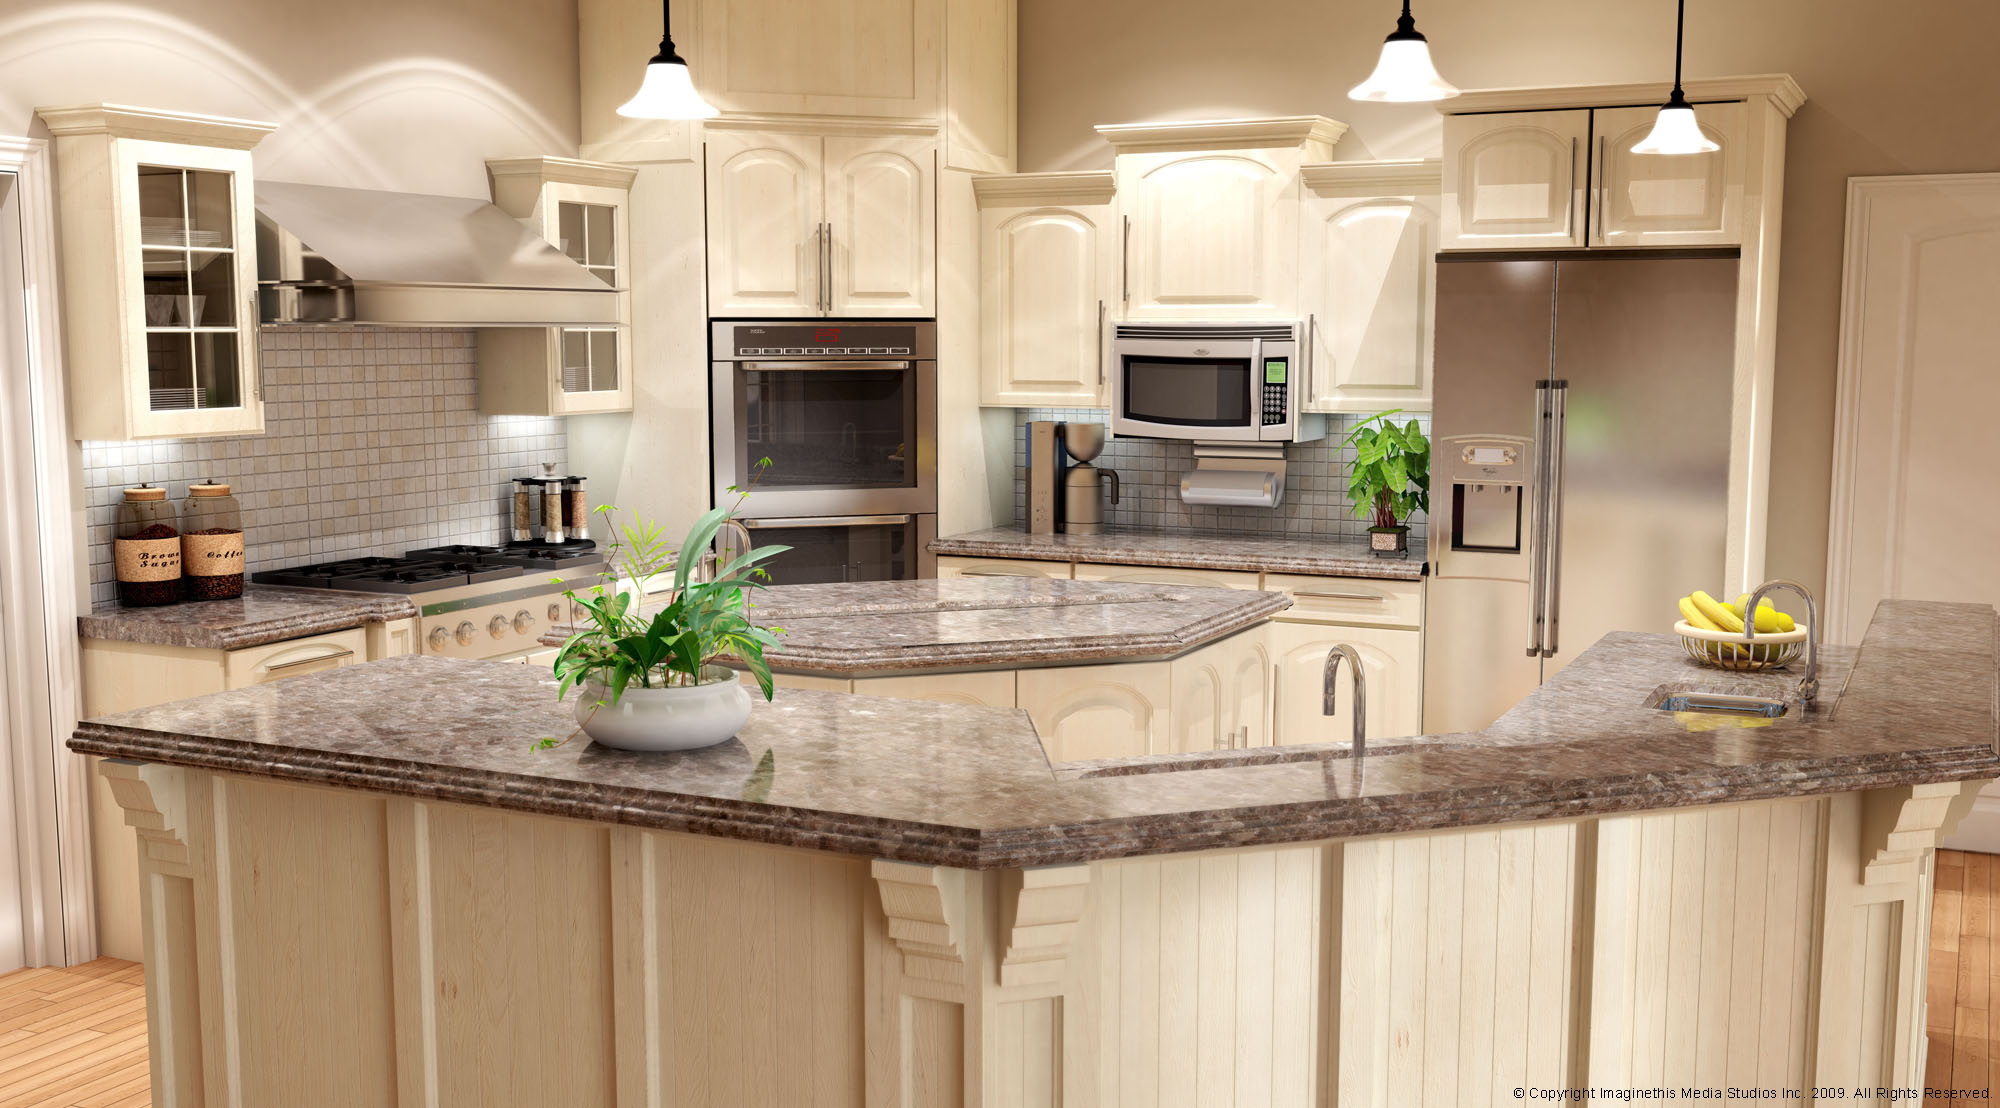 Kitchen armoire cabinets Photo - 11